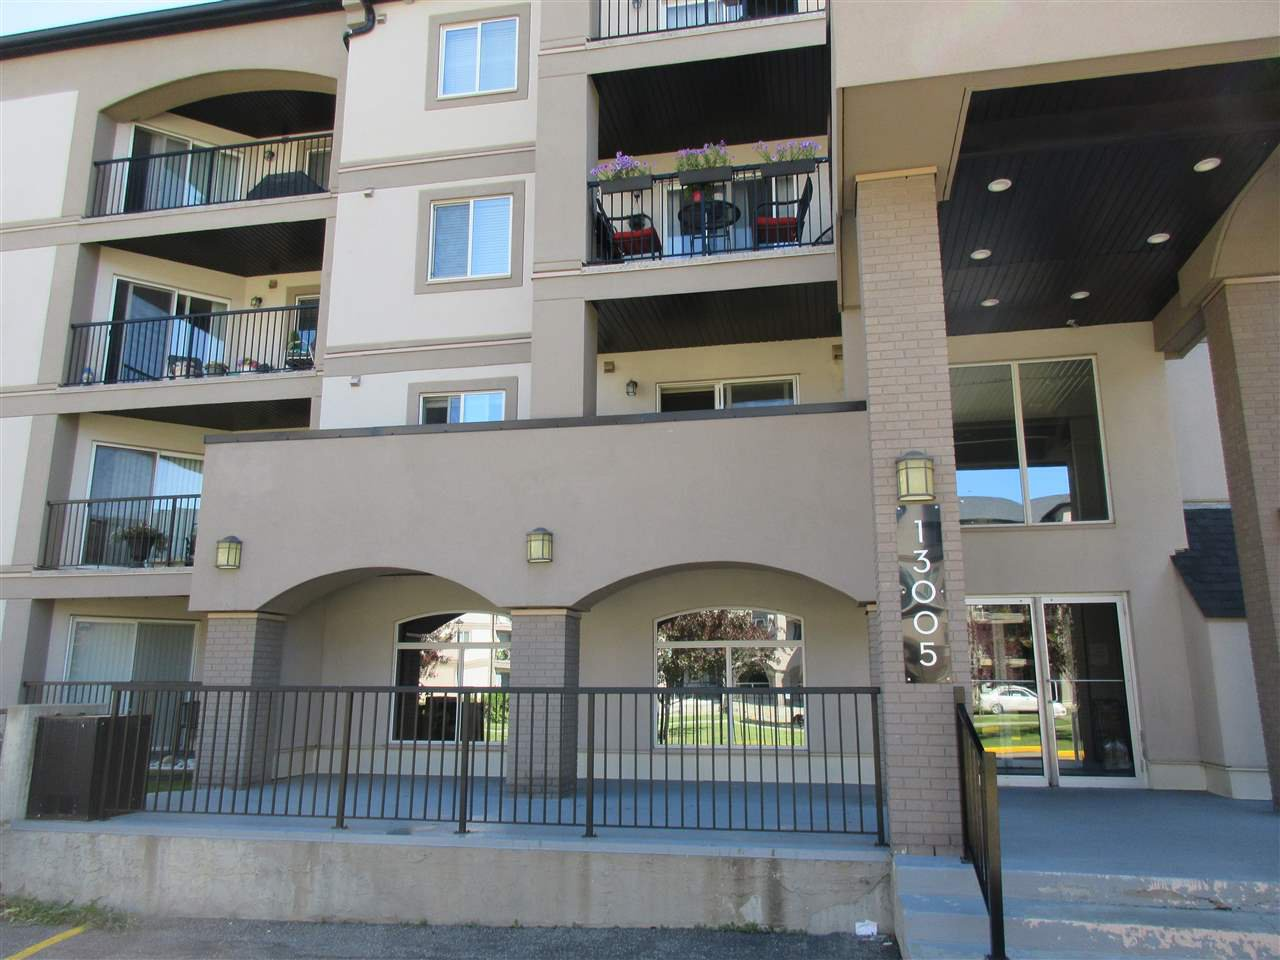 Main Photo: 232 13005 140 Avenue in Edmonton: Zone 27 Condo for sale : MLS®# E4208946